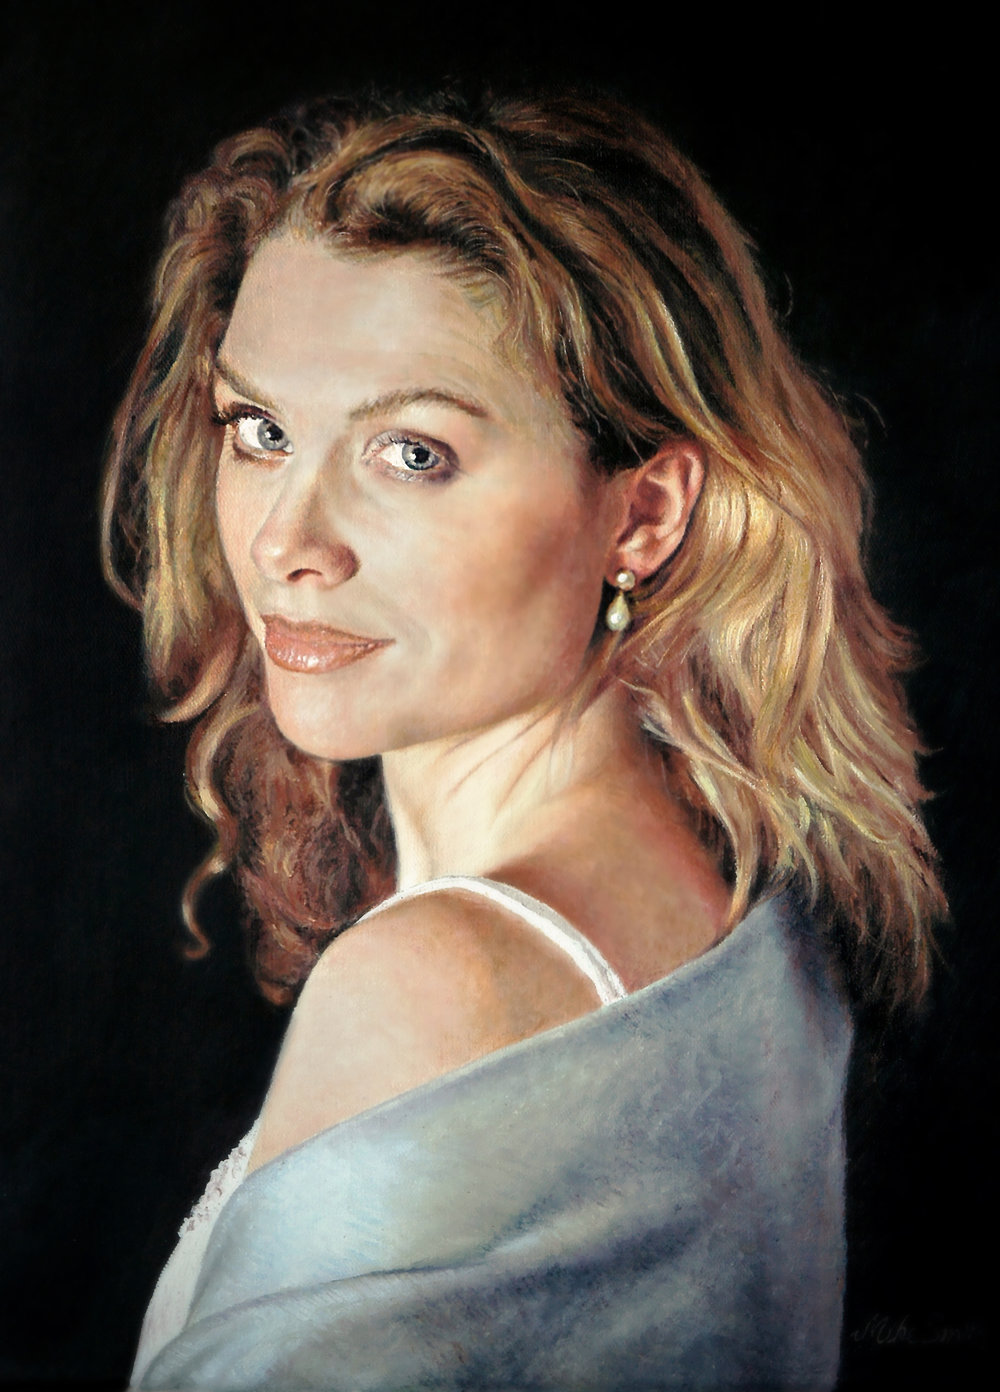 Portrait of 'JULIA'